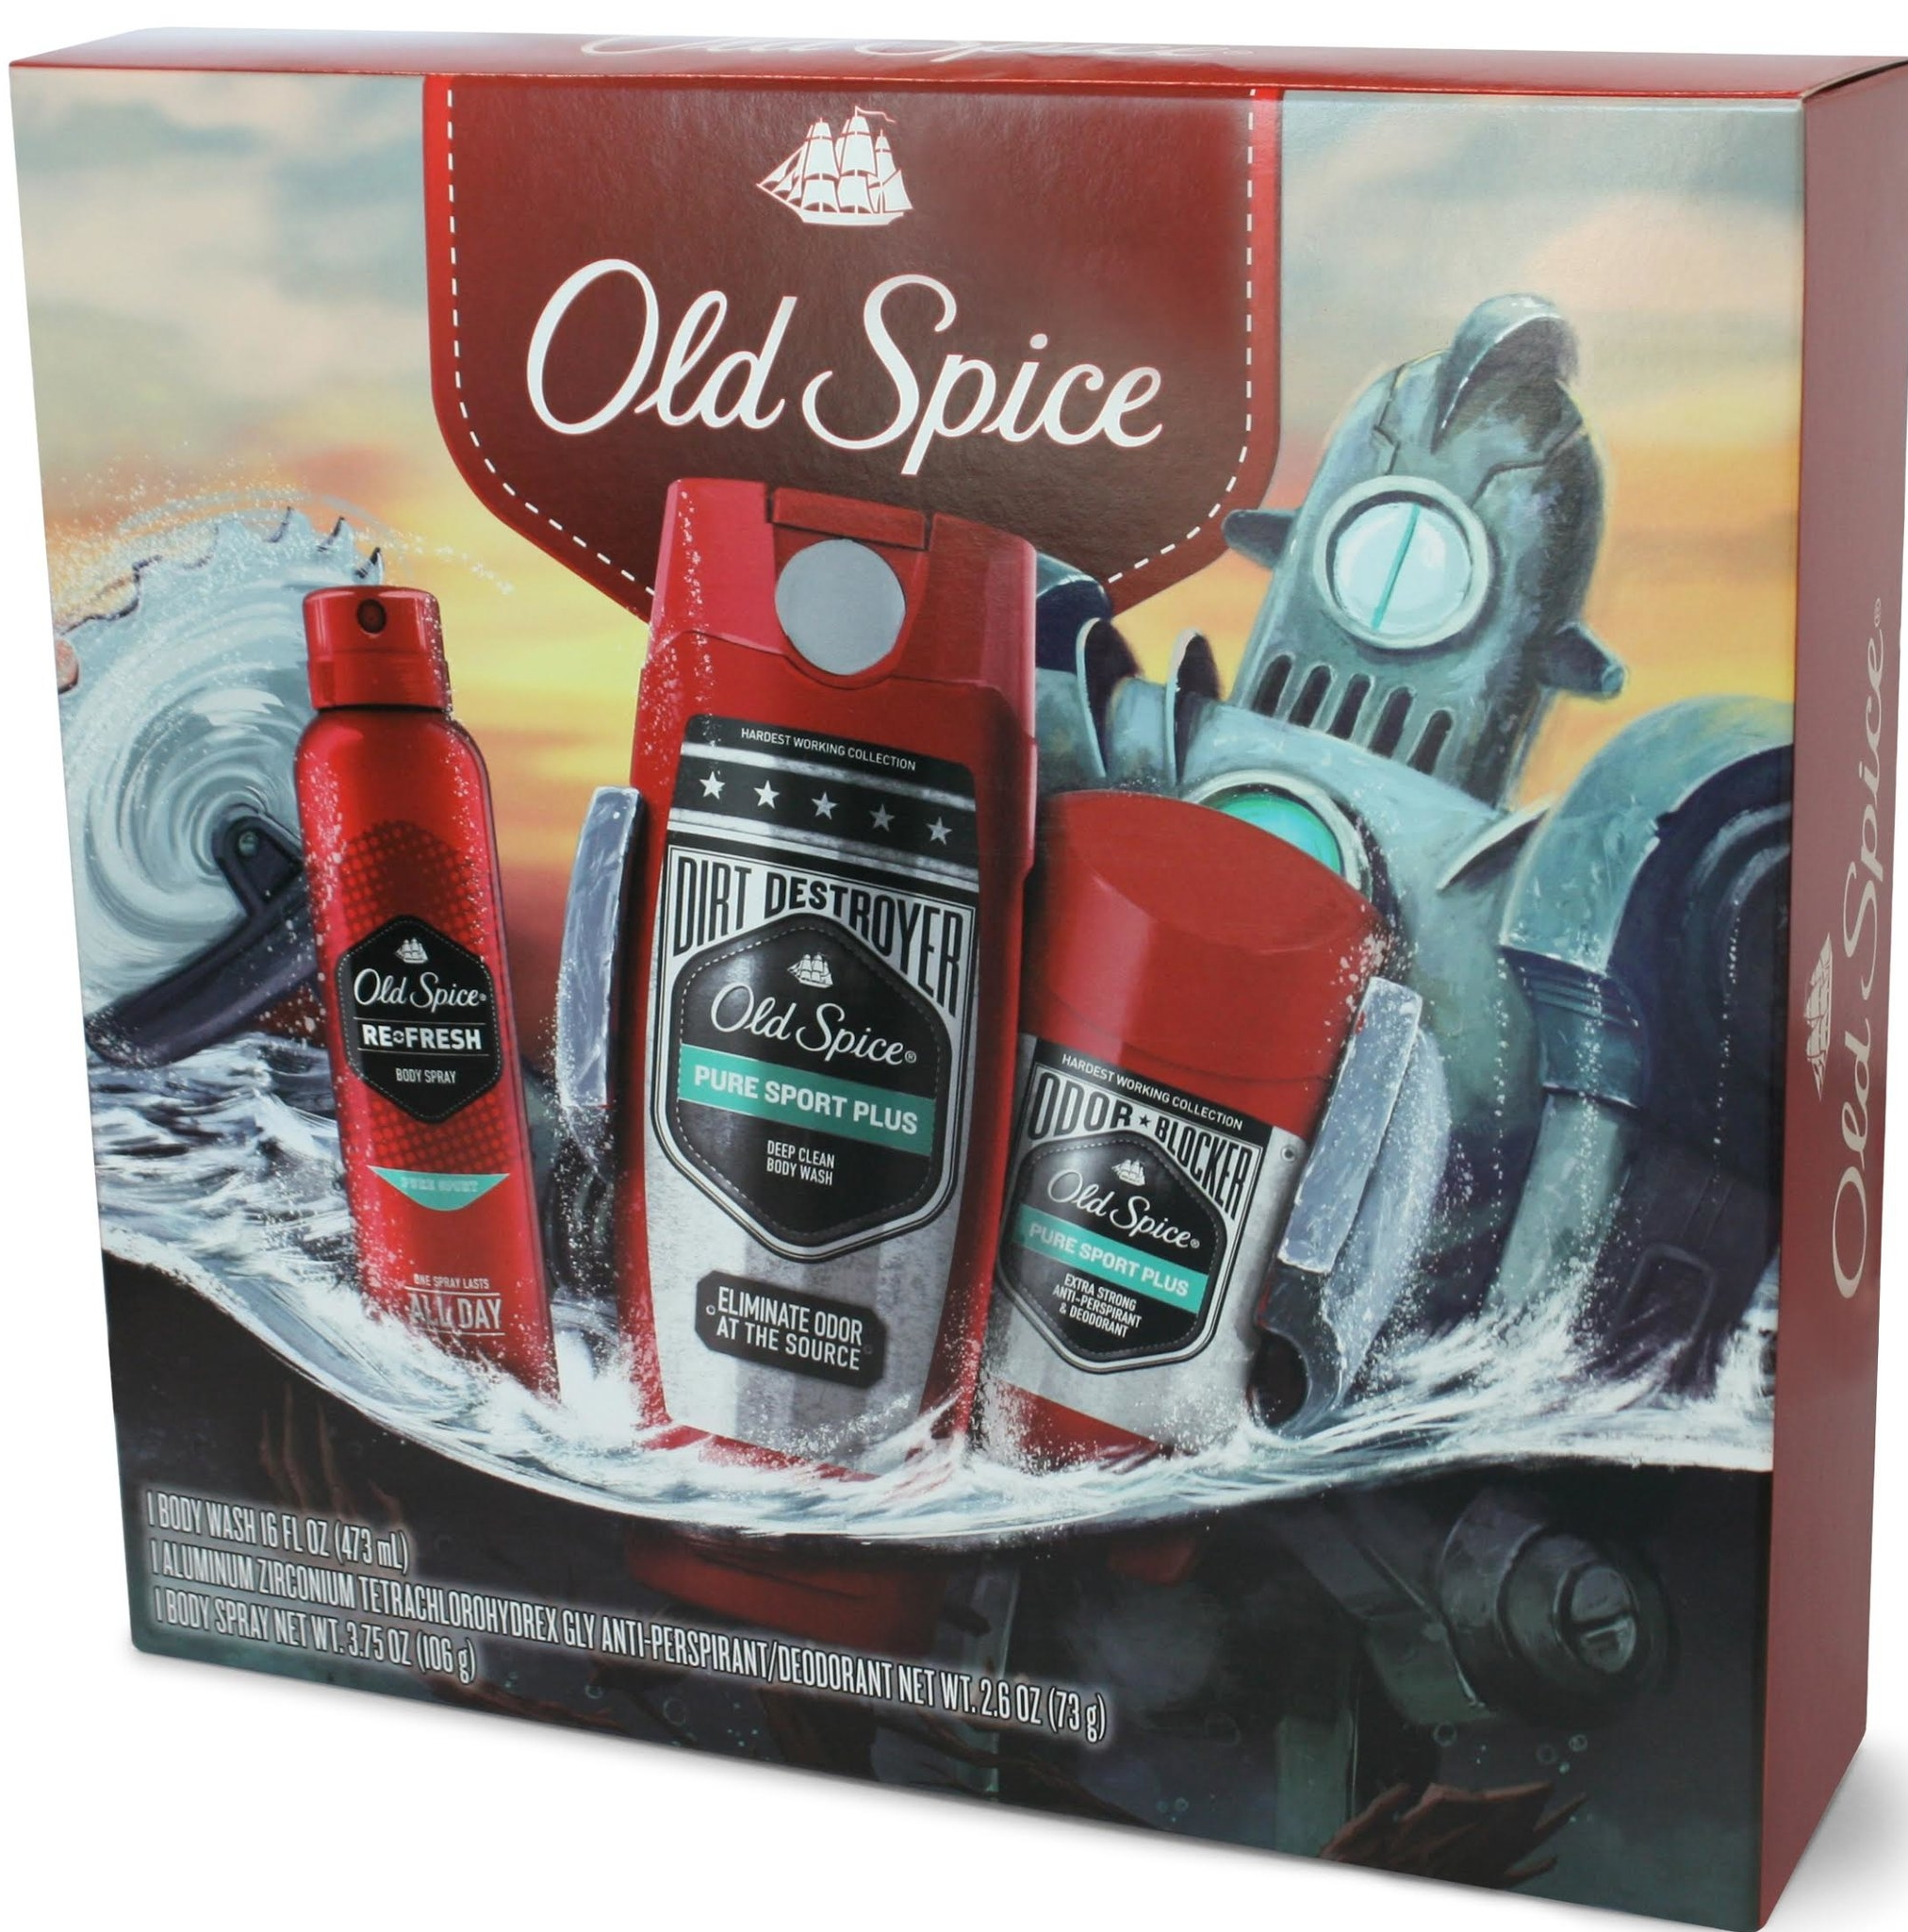 Old Spice Hardest Working Collection Pure Sport Plus Holiday Gift Set, $9.88